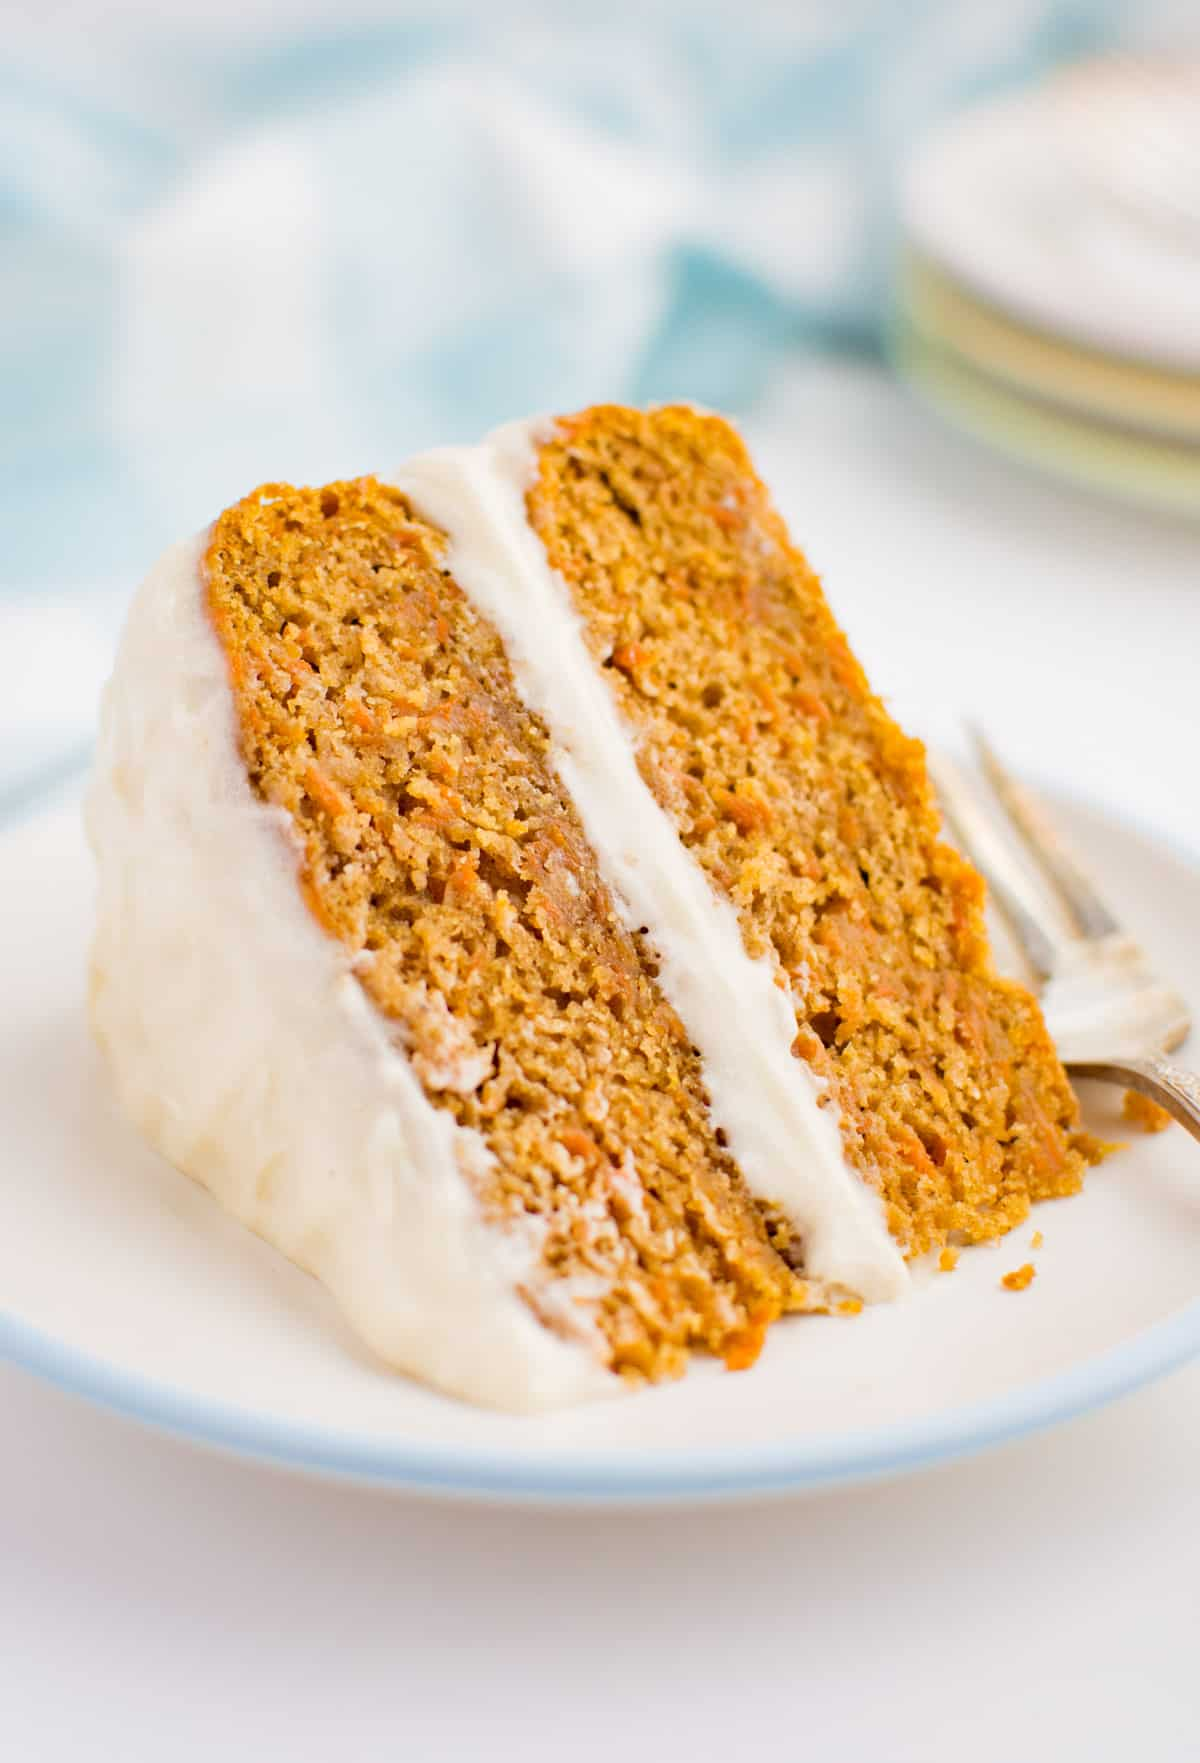 A wedge of 2 layer carrot cake with cream cheese frosting.